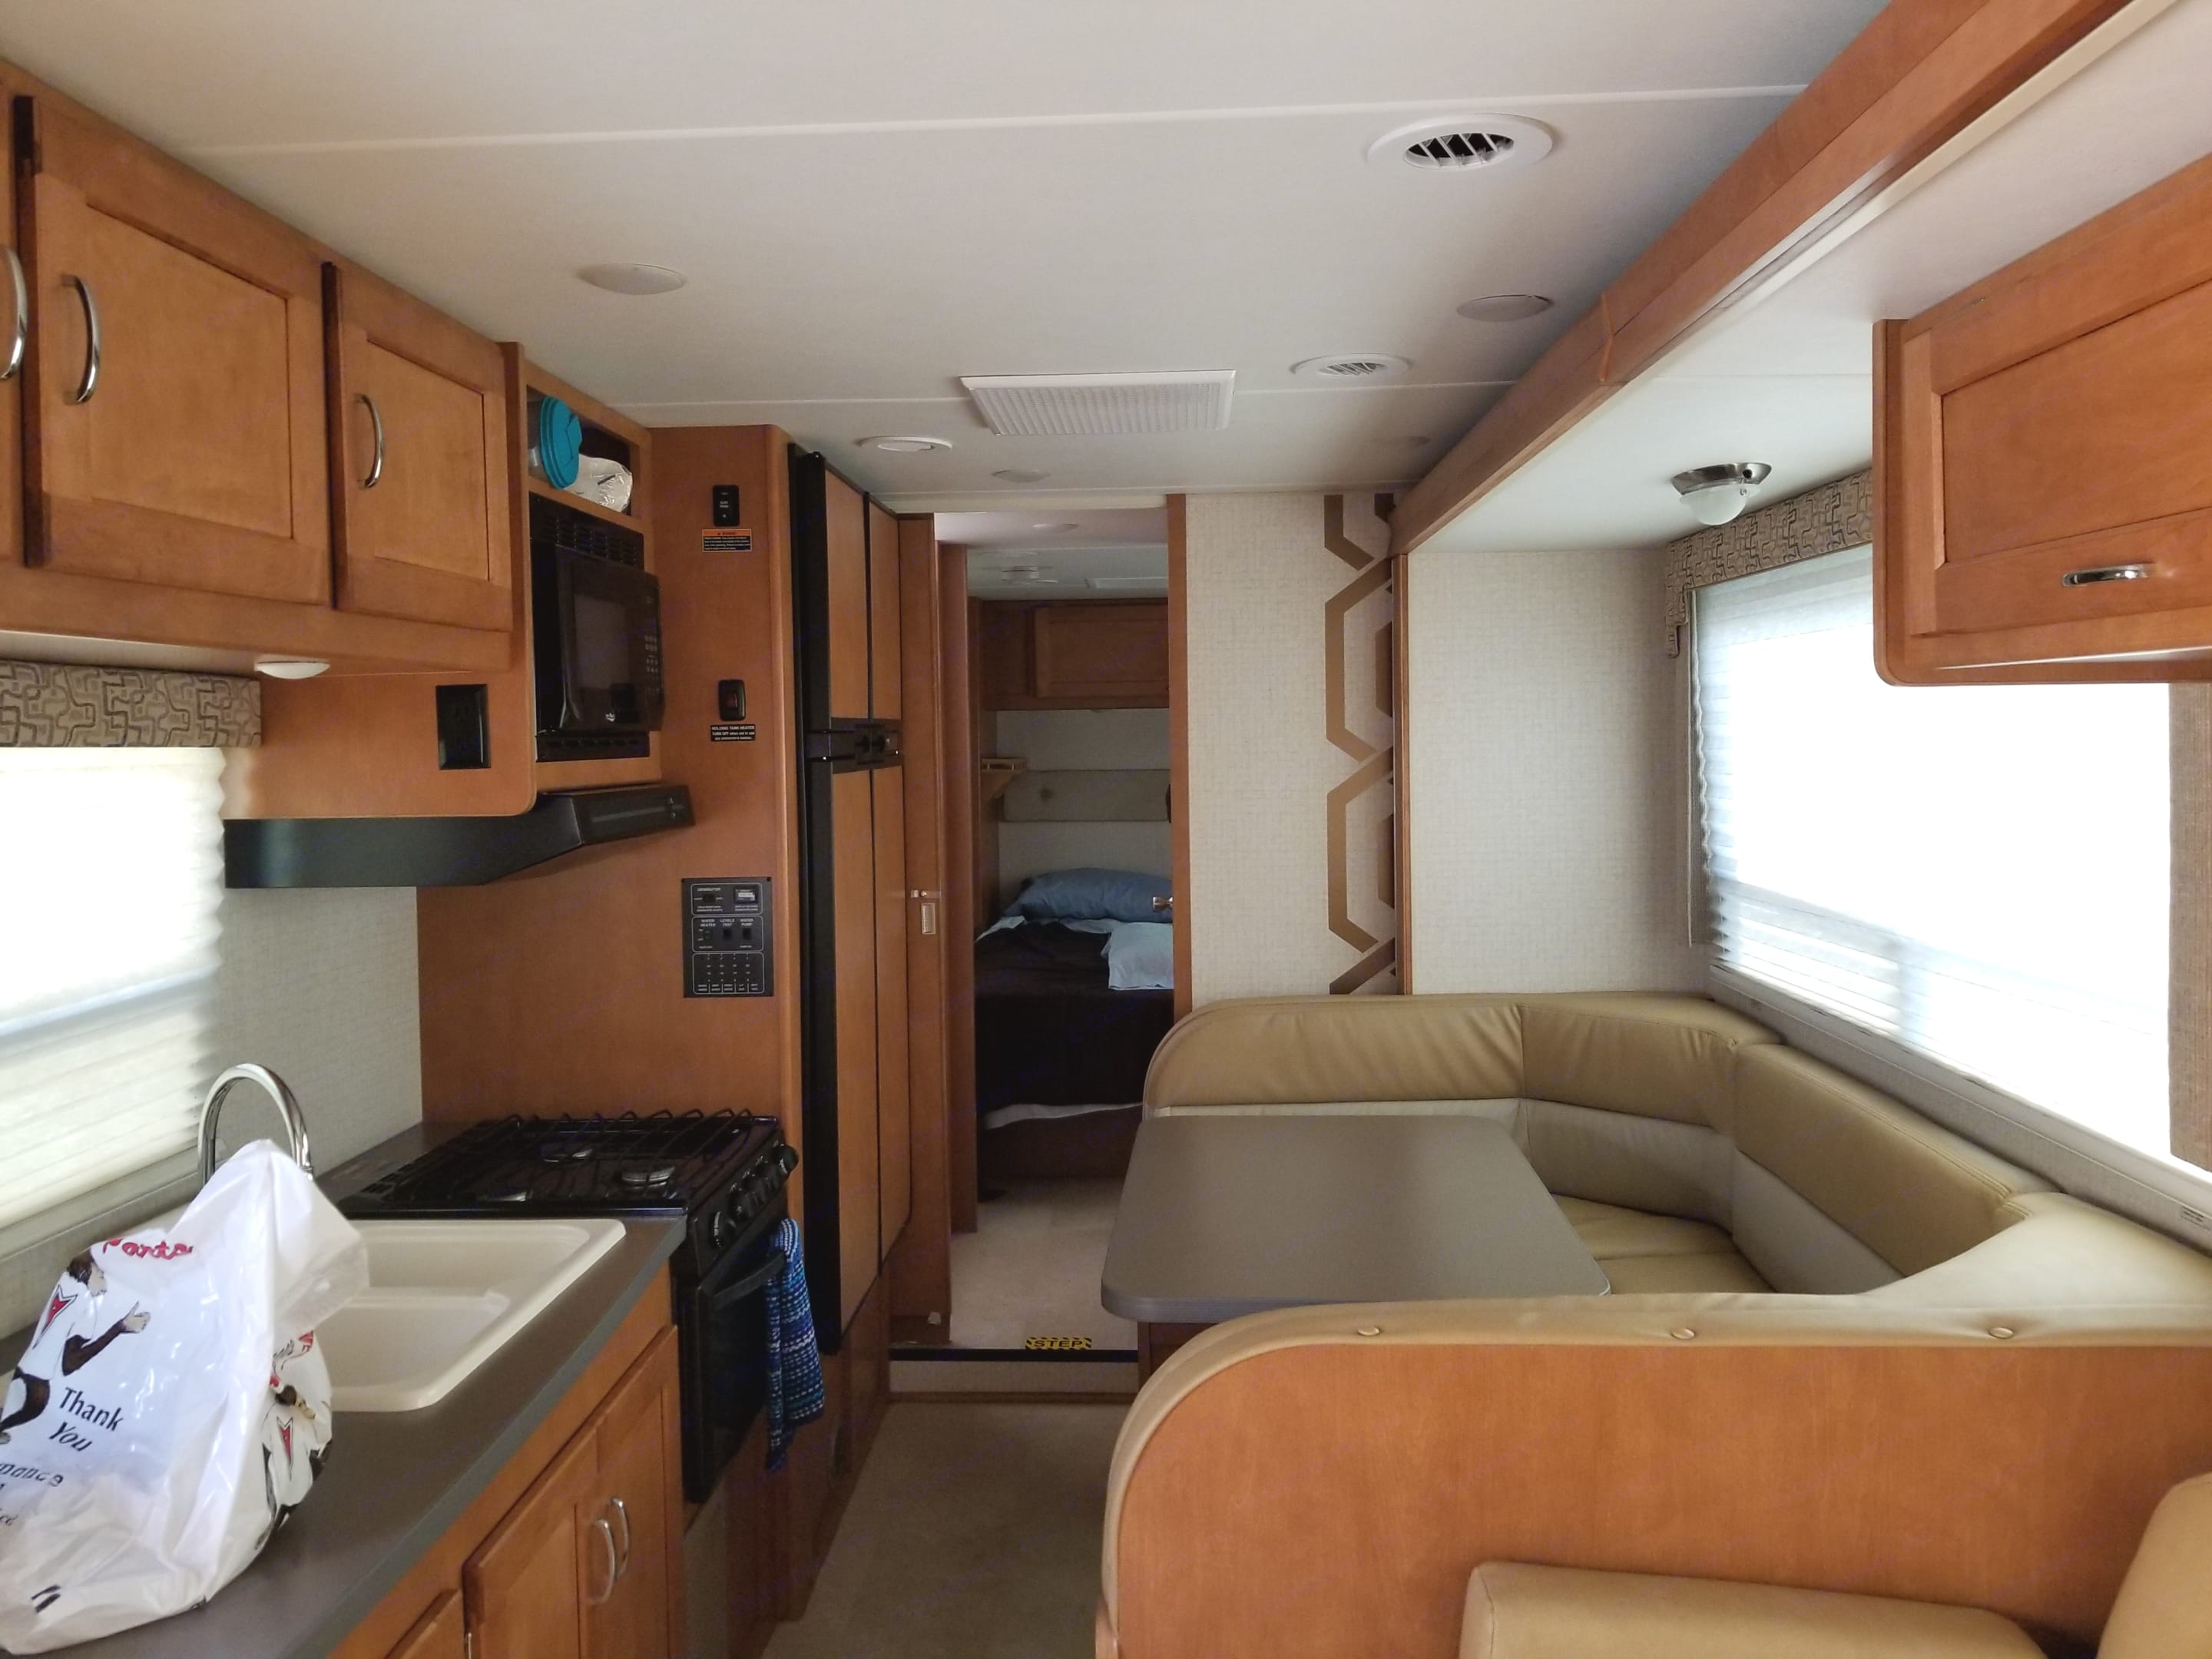 Kitchen, couch and dinette. Itasca Spirit 2016